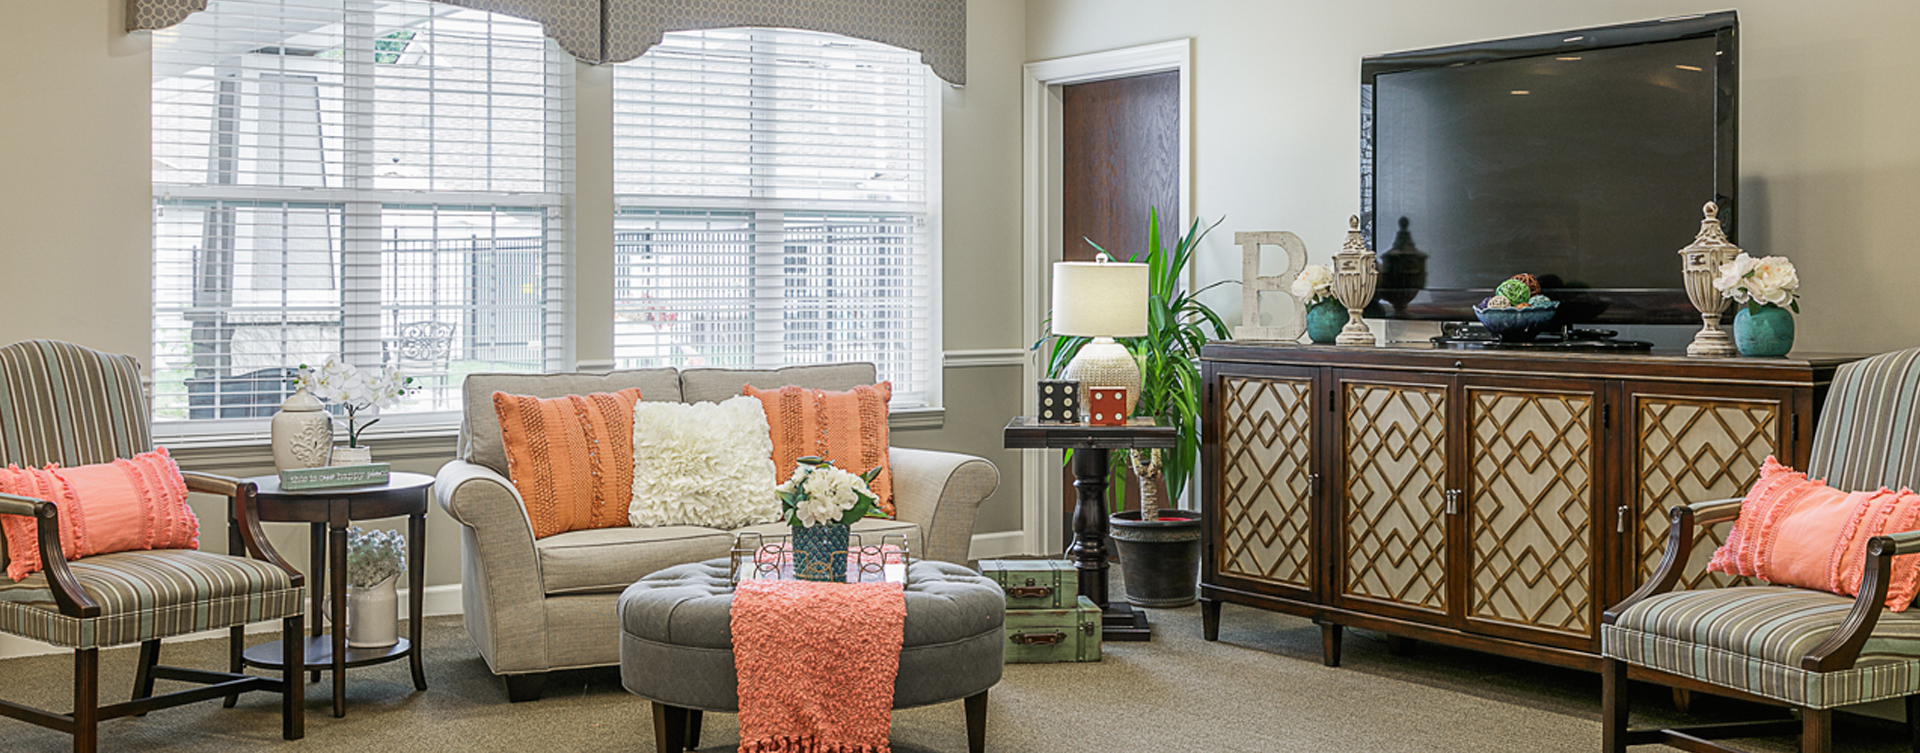 Residents can enjoy furniture covered in cozy fabrics in the Mary B's living room at Bickford of Omaha - Blondo